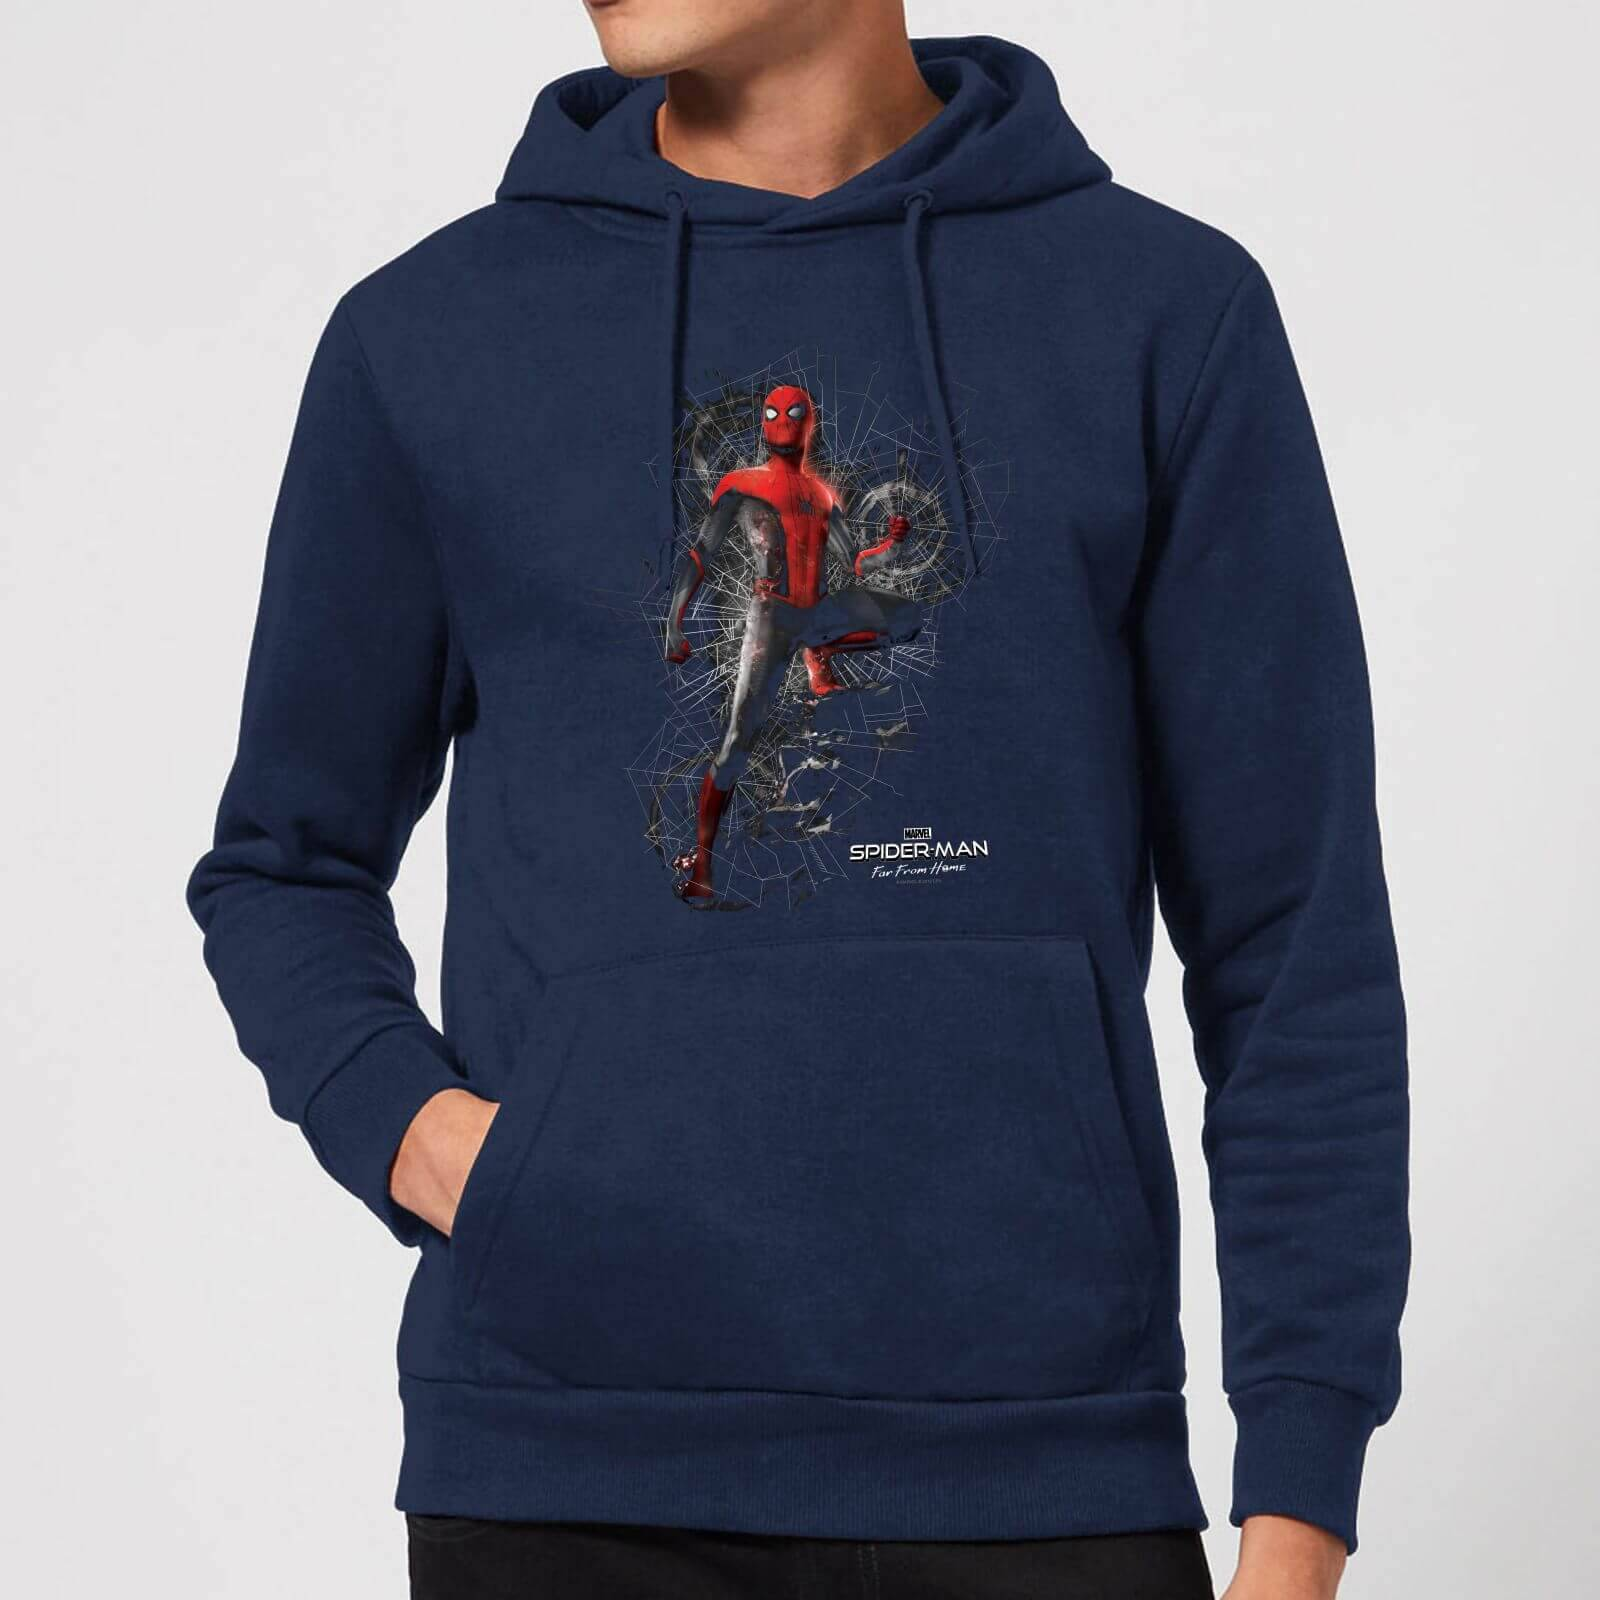 Marvel Spider-Man Far From Home Upgraded Suit Hoodie - Navy - XL - Navy